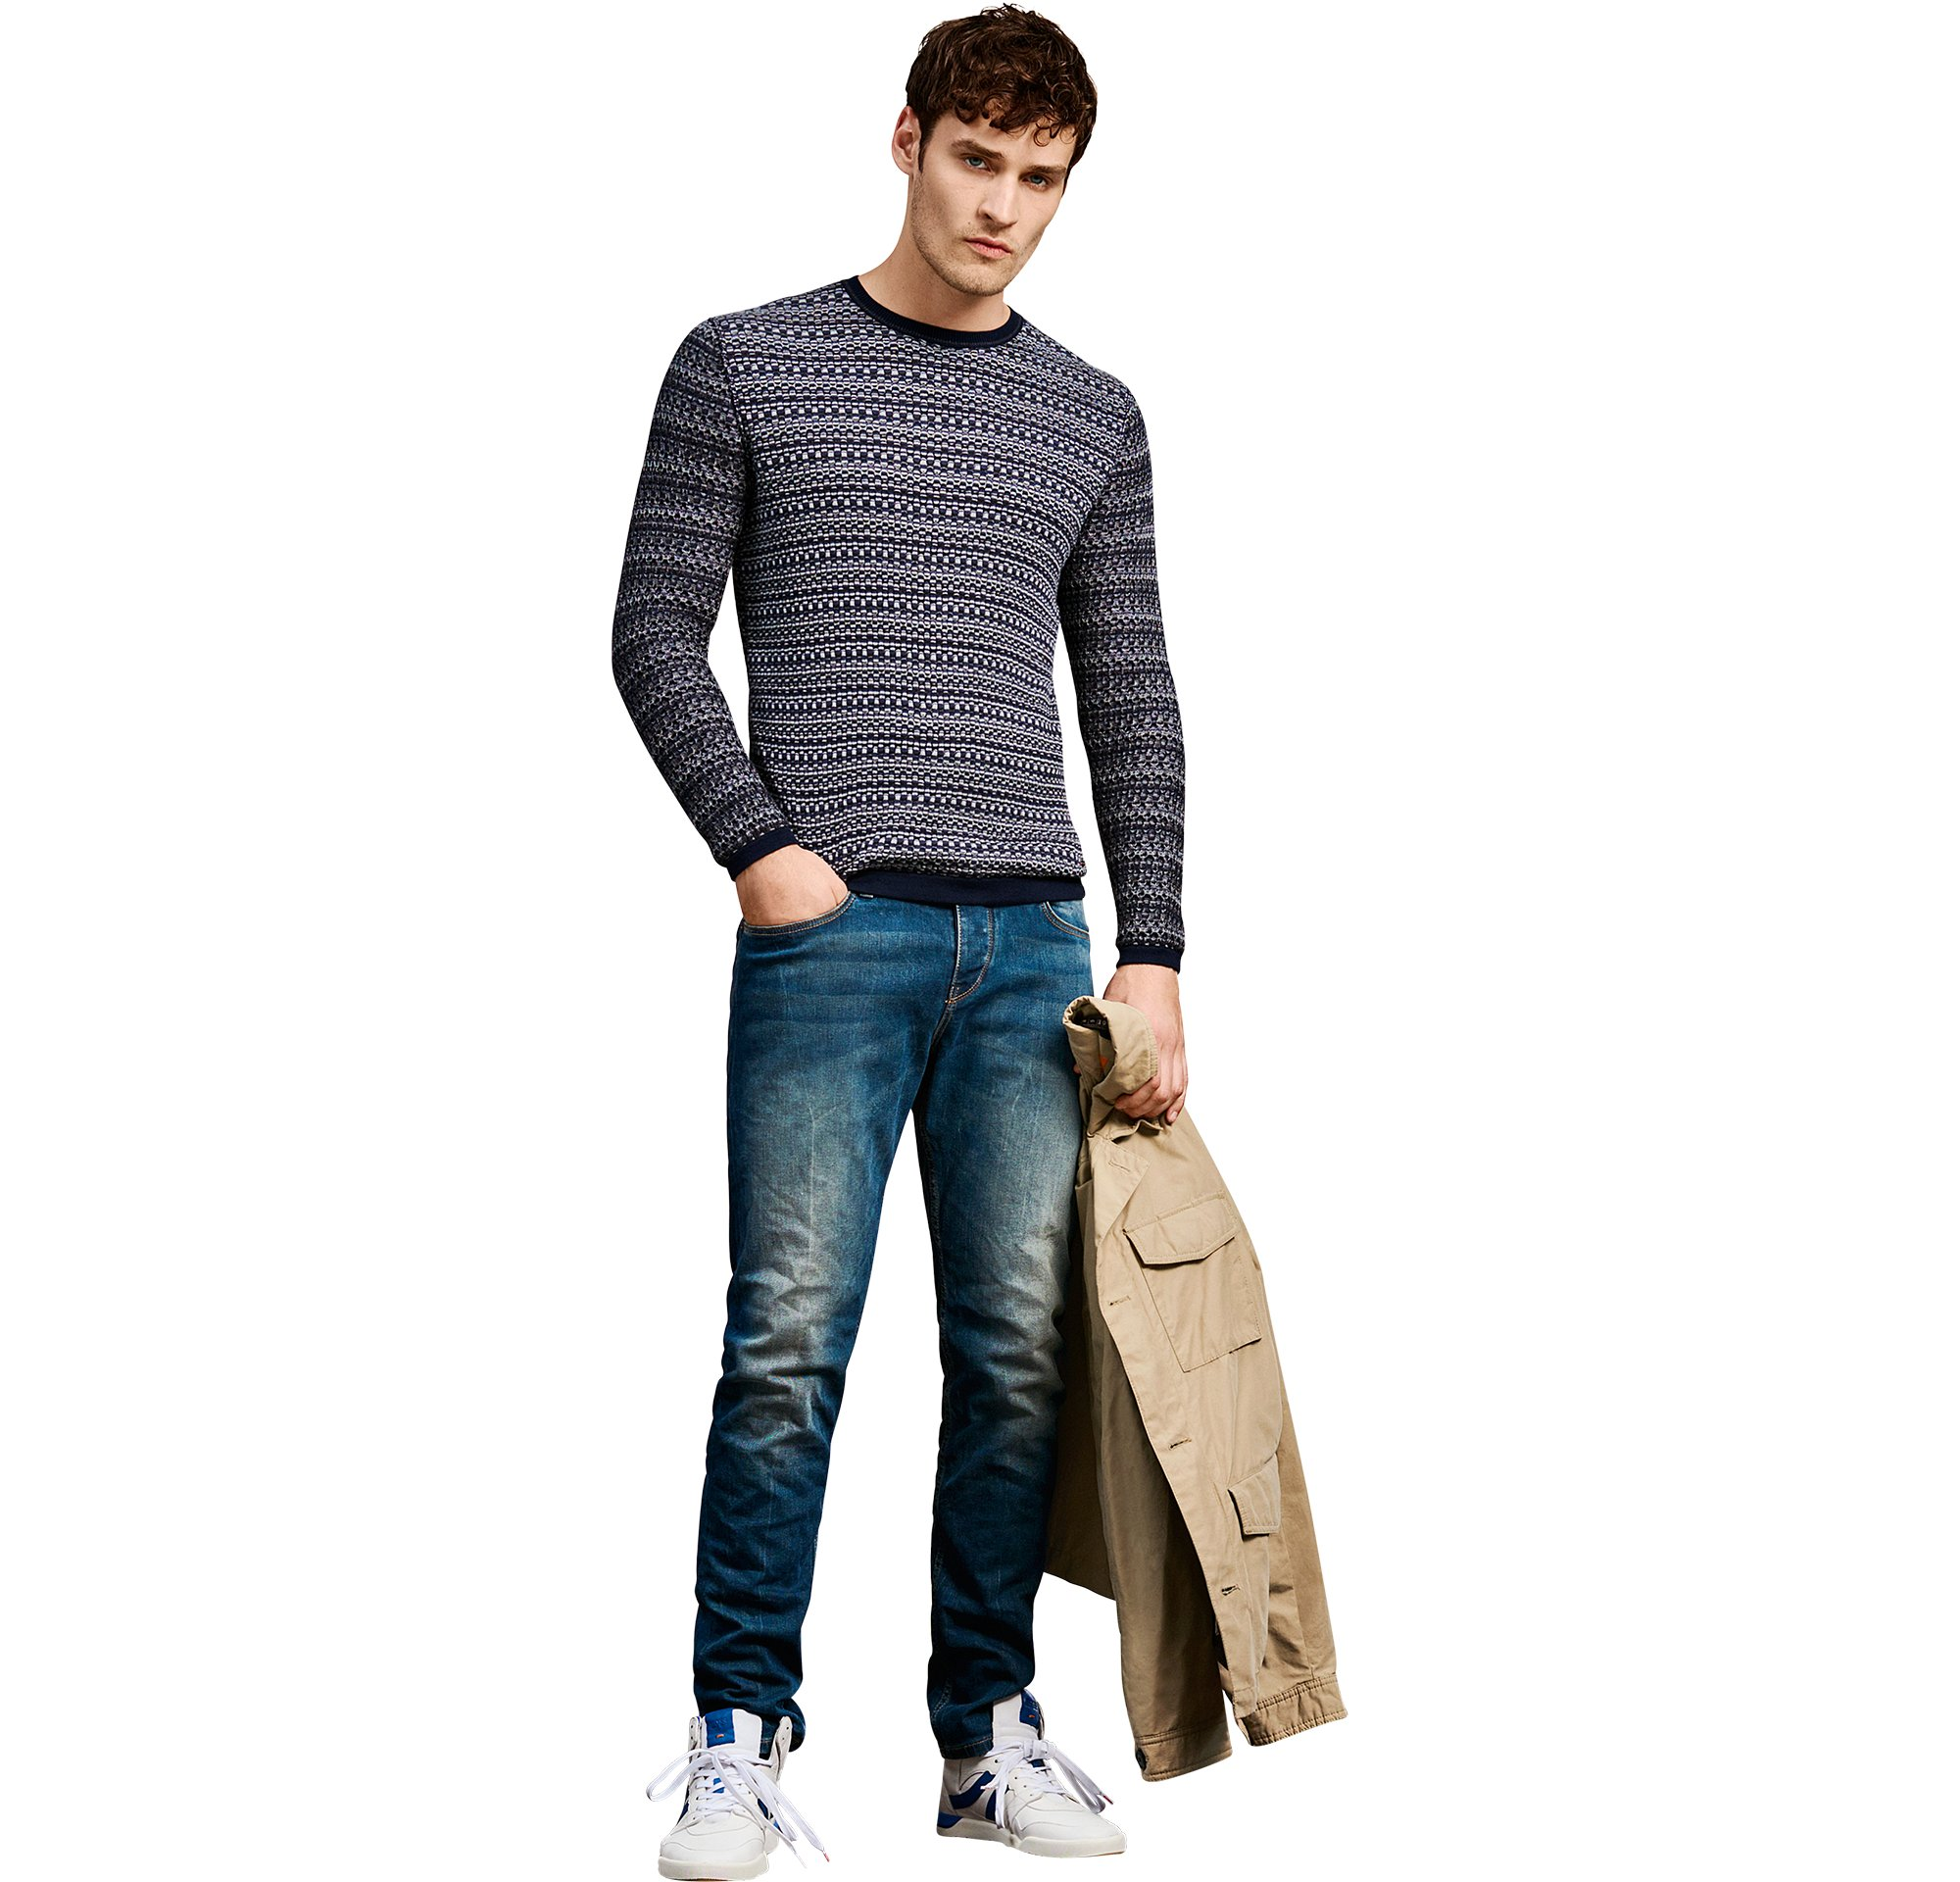 Outerwear, knitwear, jeans and shoes by BOSS Orange Menswear